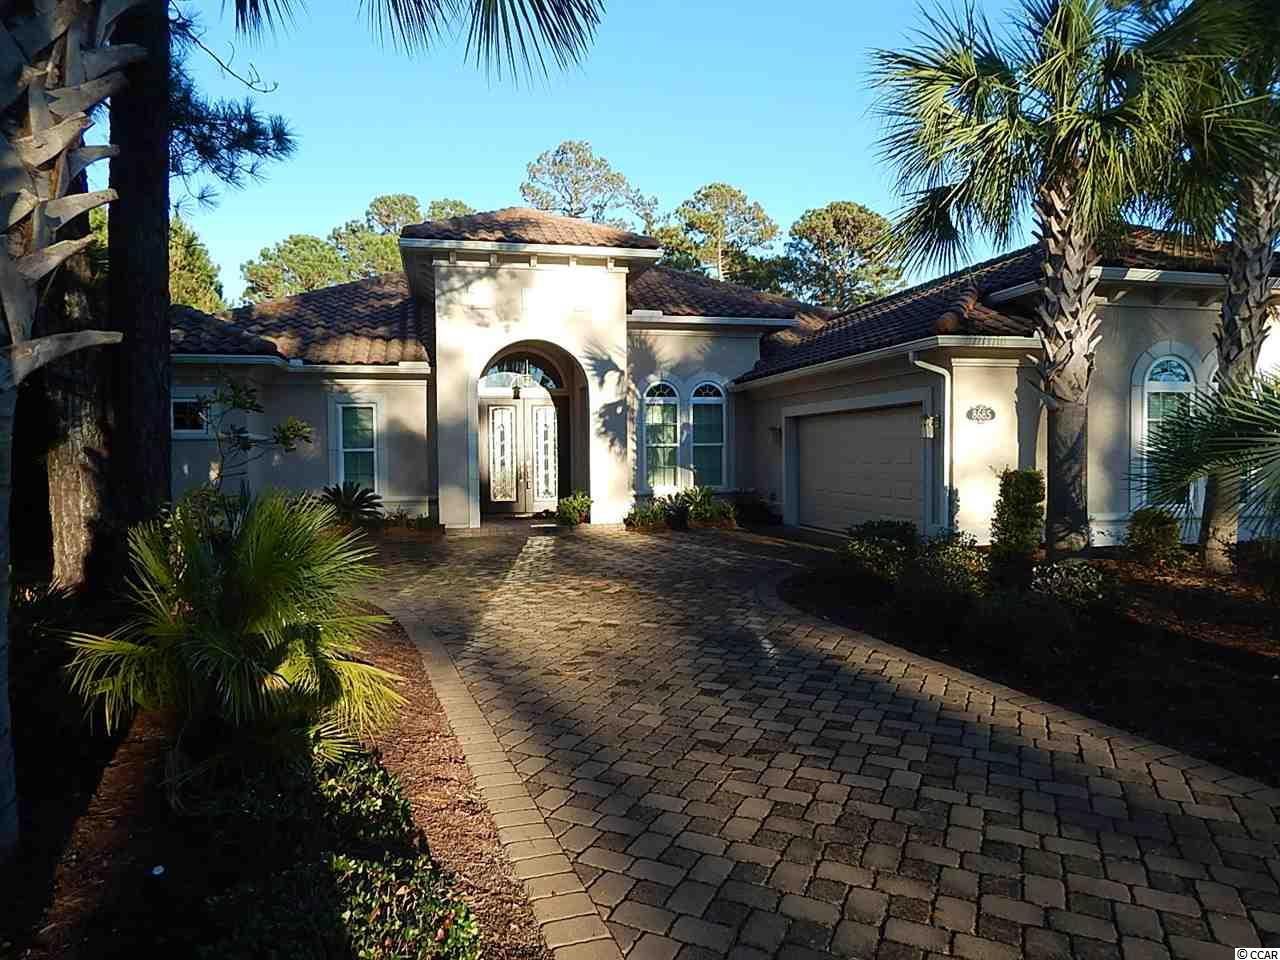 Located in prestigious GRANDE DUNES, this custom built 3 bedroom, 3 bathroom ARTHUR RUTENBERG home is a work of art. Built in 2013, this home has been meticulously maintained and shows beautifully. In addition to the 3 bedroom split plan, there is an office which could function as a 4th bedroom with its own bath. The kitchen features top of the line stainless steel appliances, with granite countertops throughout. Tumbled marble backsplash is accented with its own lighting. The home has a formal dining room, with more informal breakfast nook, and seating along the outside of the island in the kitchen. Master bedroom suite has its own door leading to a screened patio. Master bath has both a walk in shower and Jacuzzi style bathtub. There is a huge walk in closet. Huge 2 car garage offers your vehicles protection from the elements. Corner lot location with only one adjacent neighbor. Grande Dunes amenities include Grande Dunes Beach Club, Golf, & Tennis. You simply can't go wrong with the best! Call today to view!